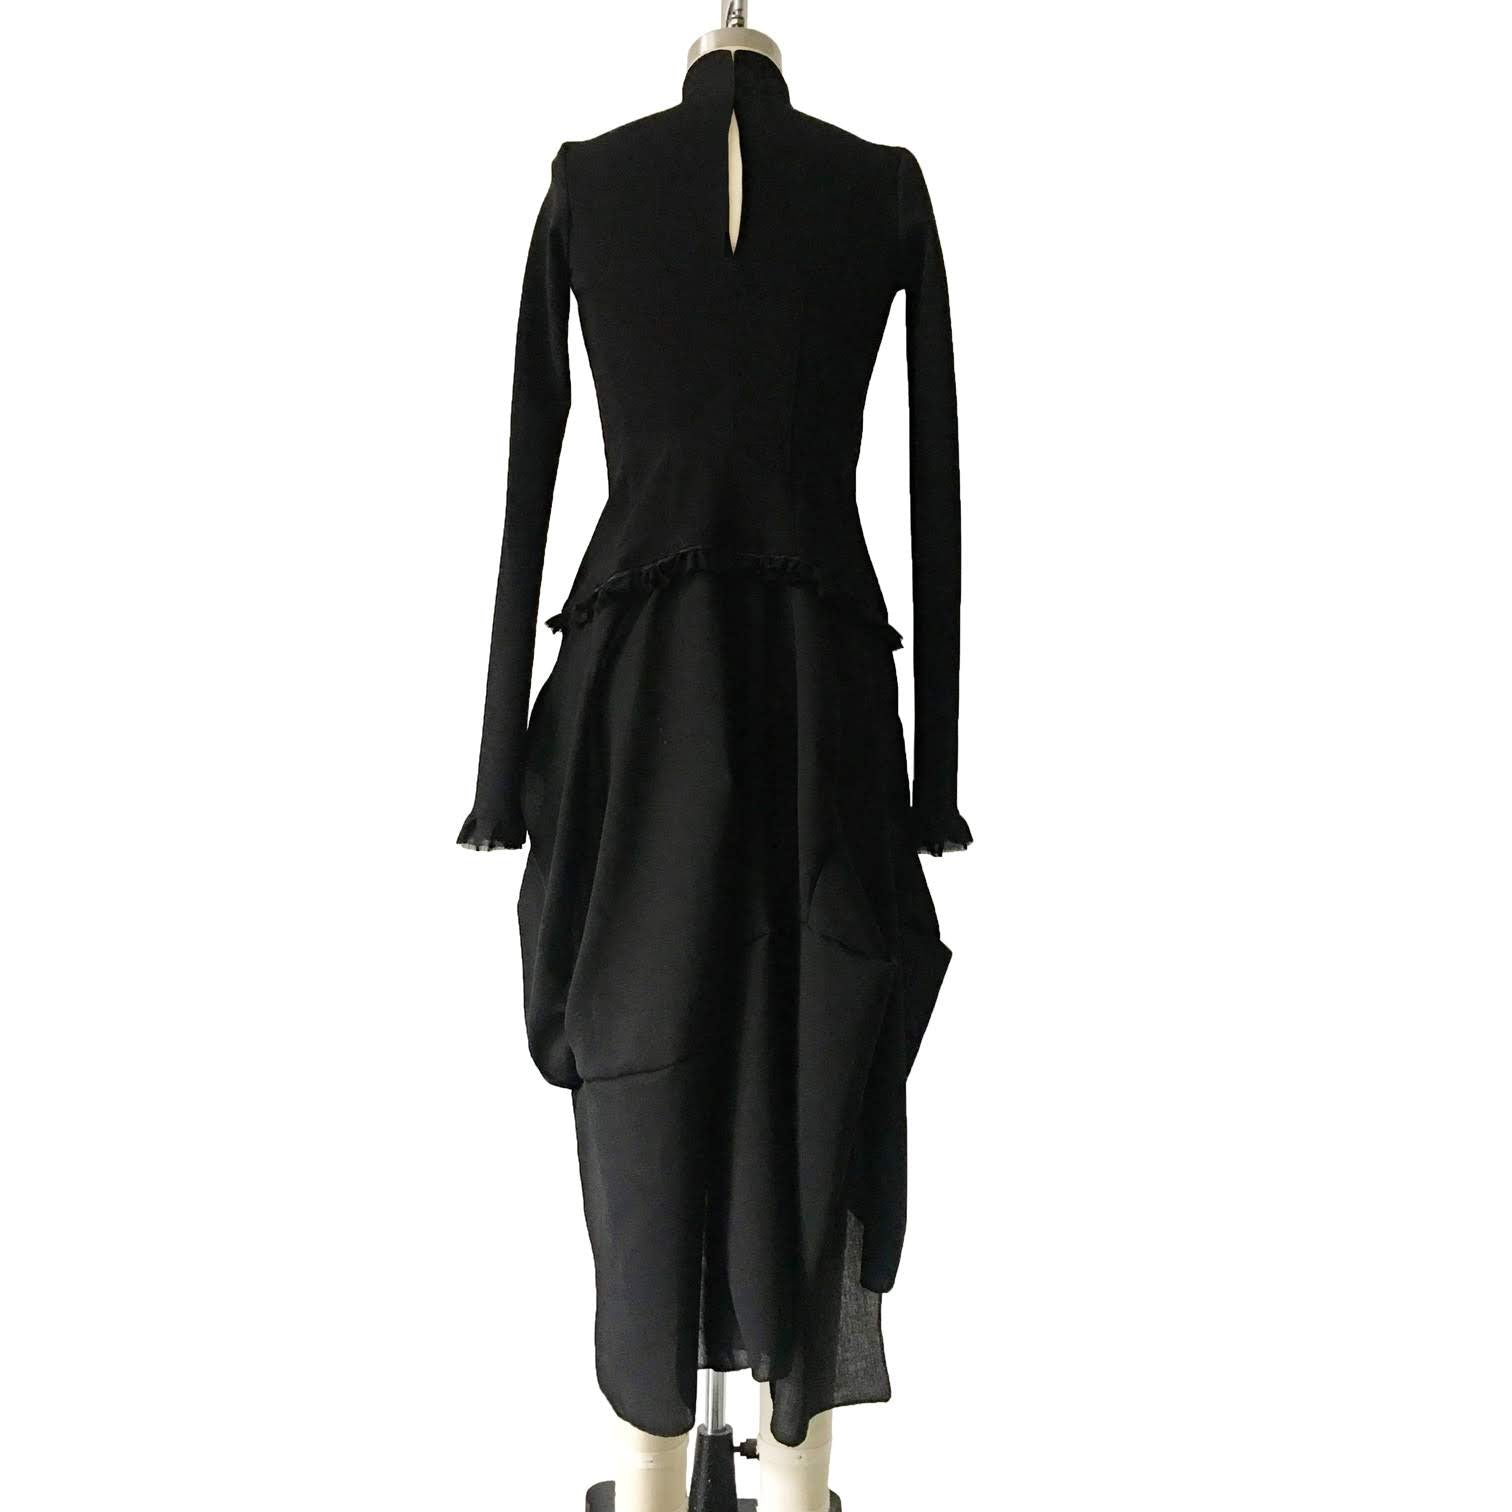 THE DEGAS DRESS - Wool